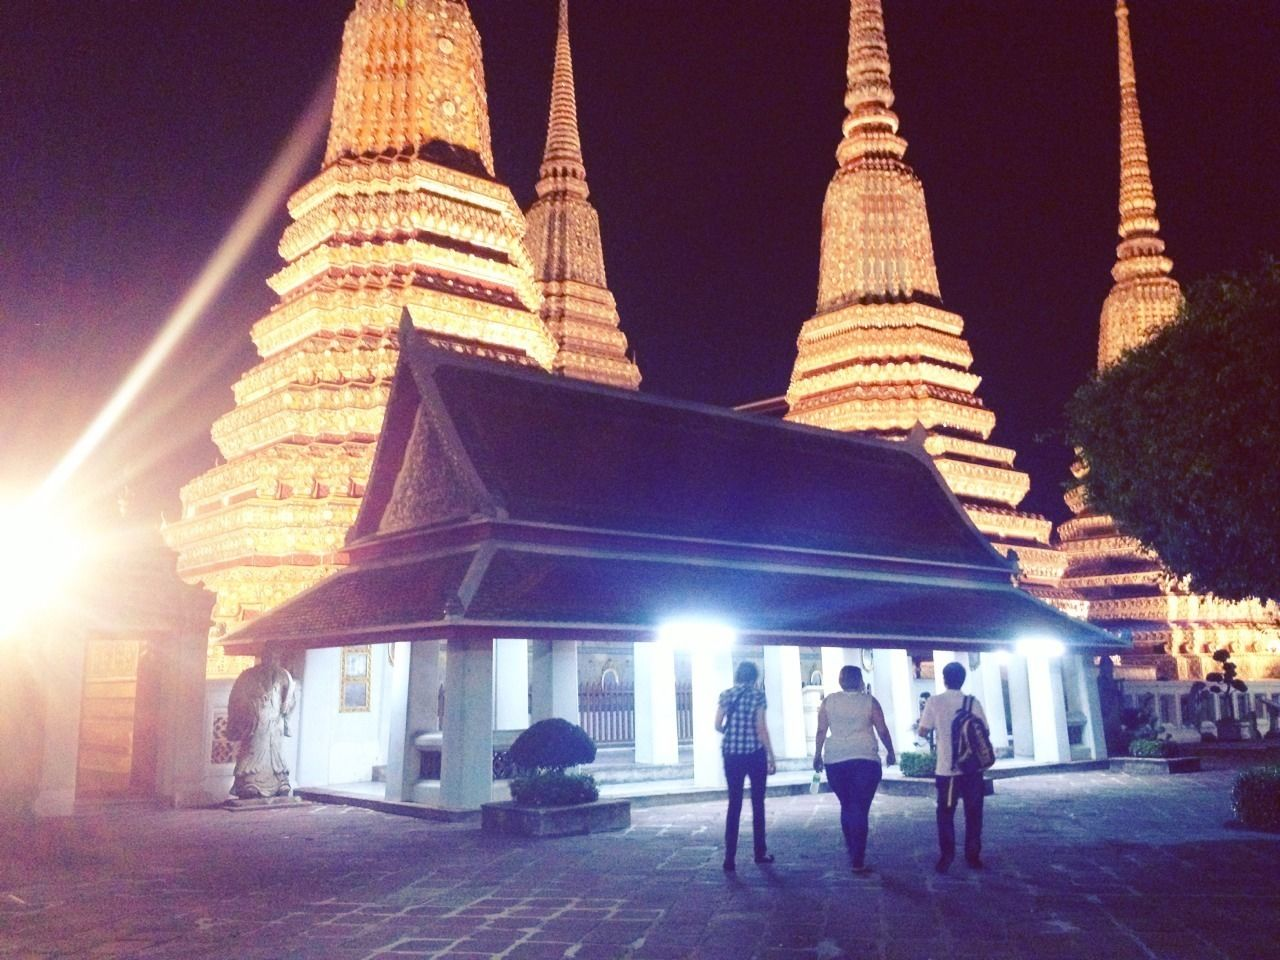 Tour group at a temple lit up at night in Bangkok